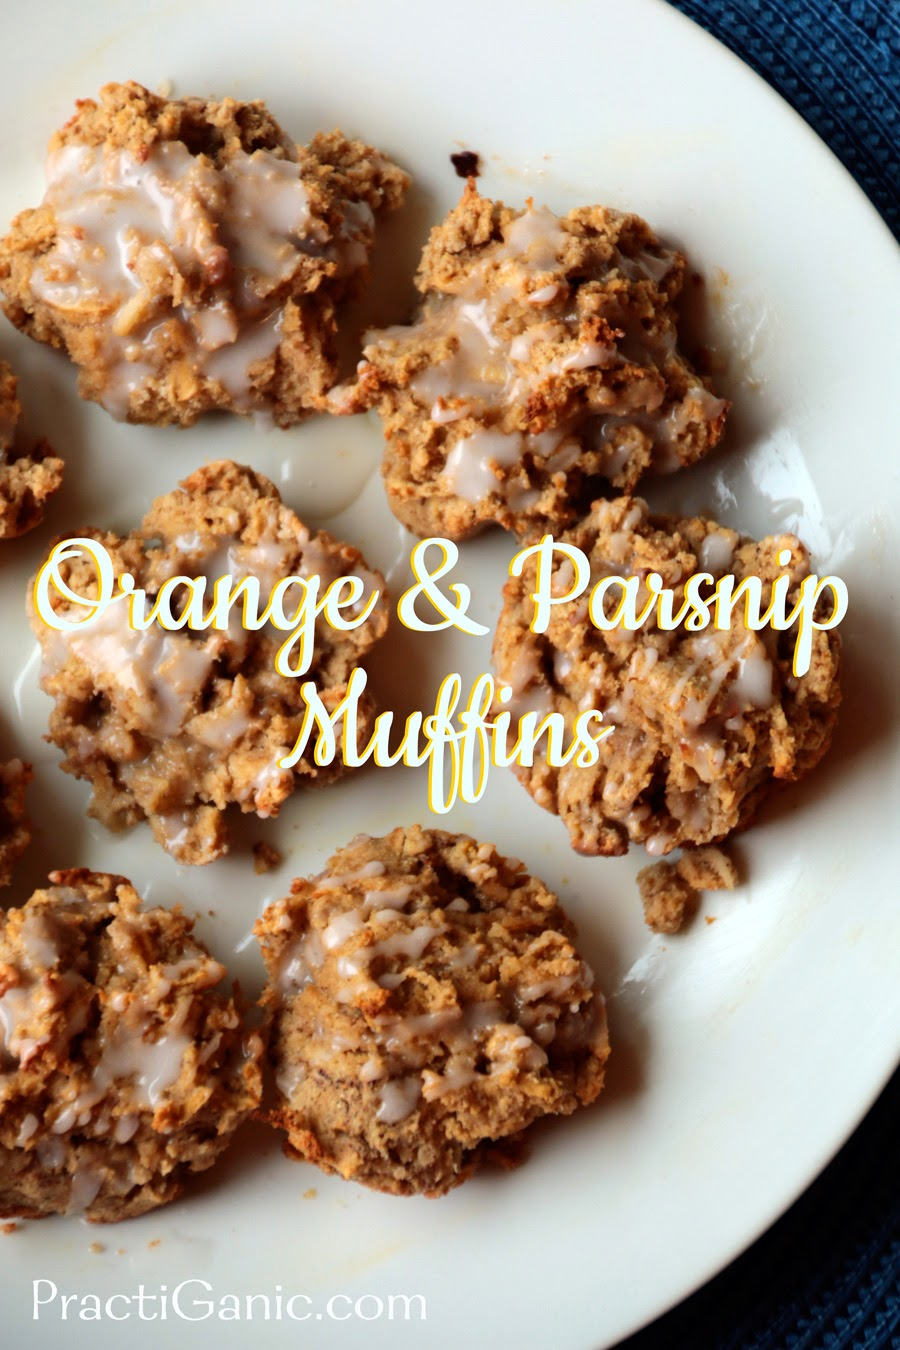 Orange and Parsnip Muffins